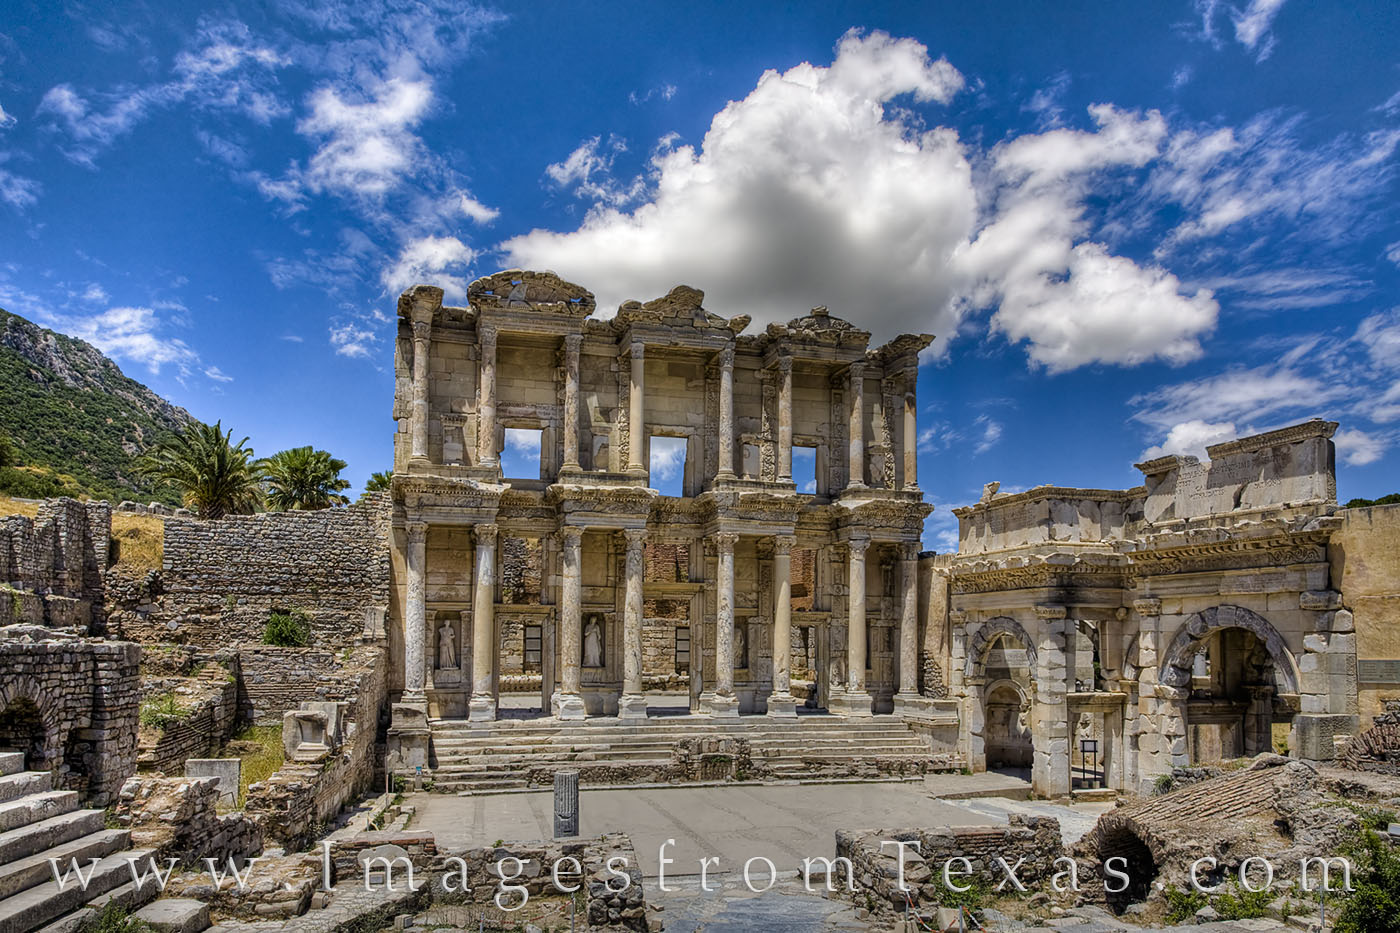 The Library of Celsus dates to 117 AD and is an ancient Roman building in Ephesus, Anatolia, now part of Selçuk, Turkey. Celsus...